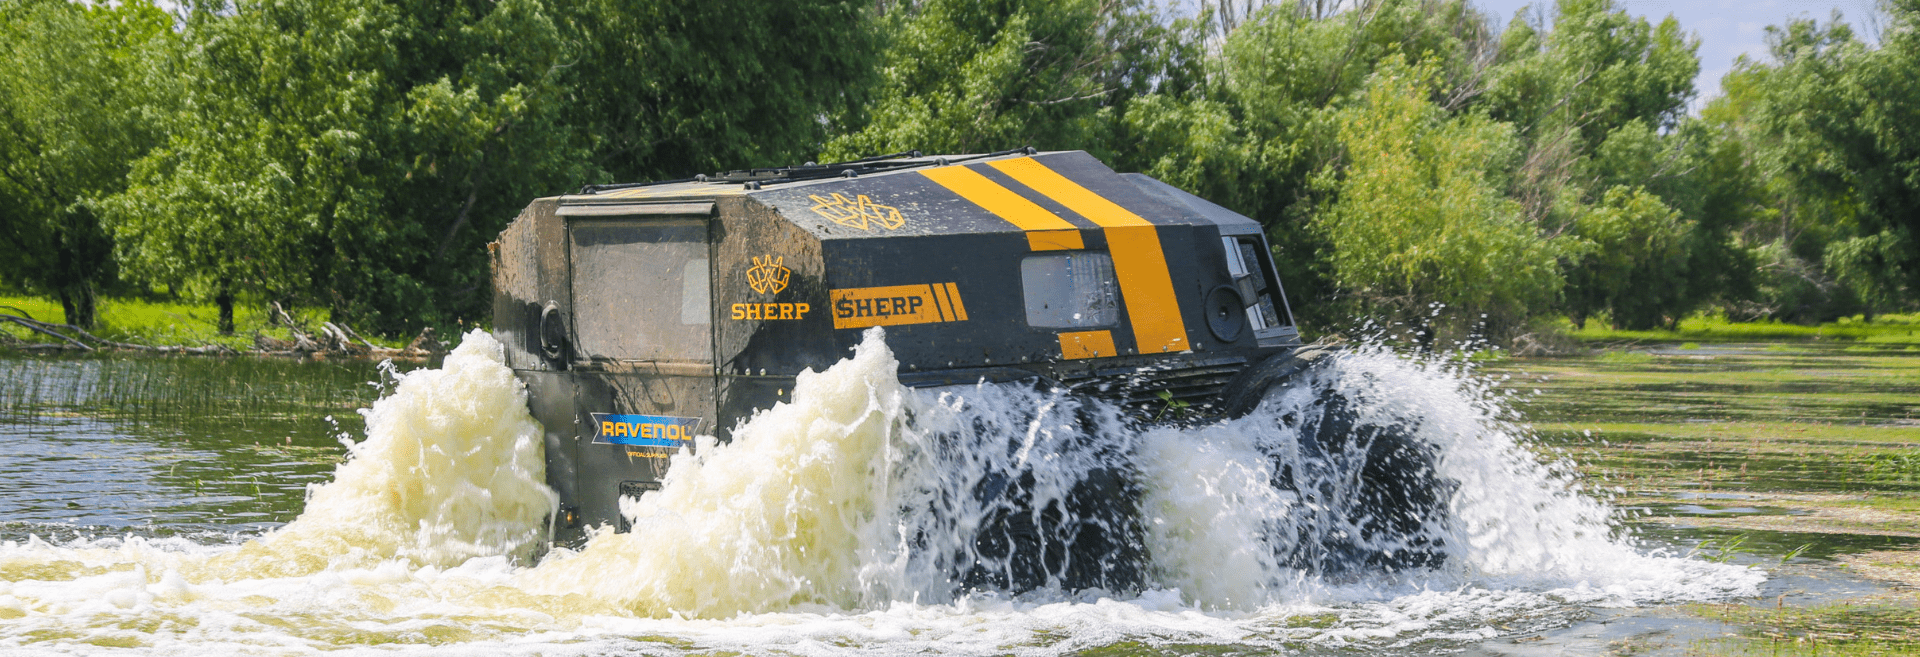 Sherp on the water